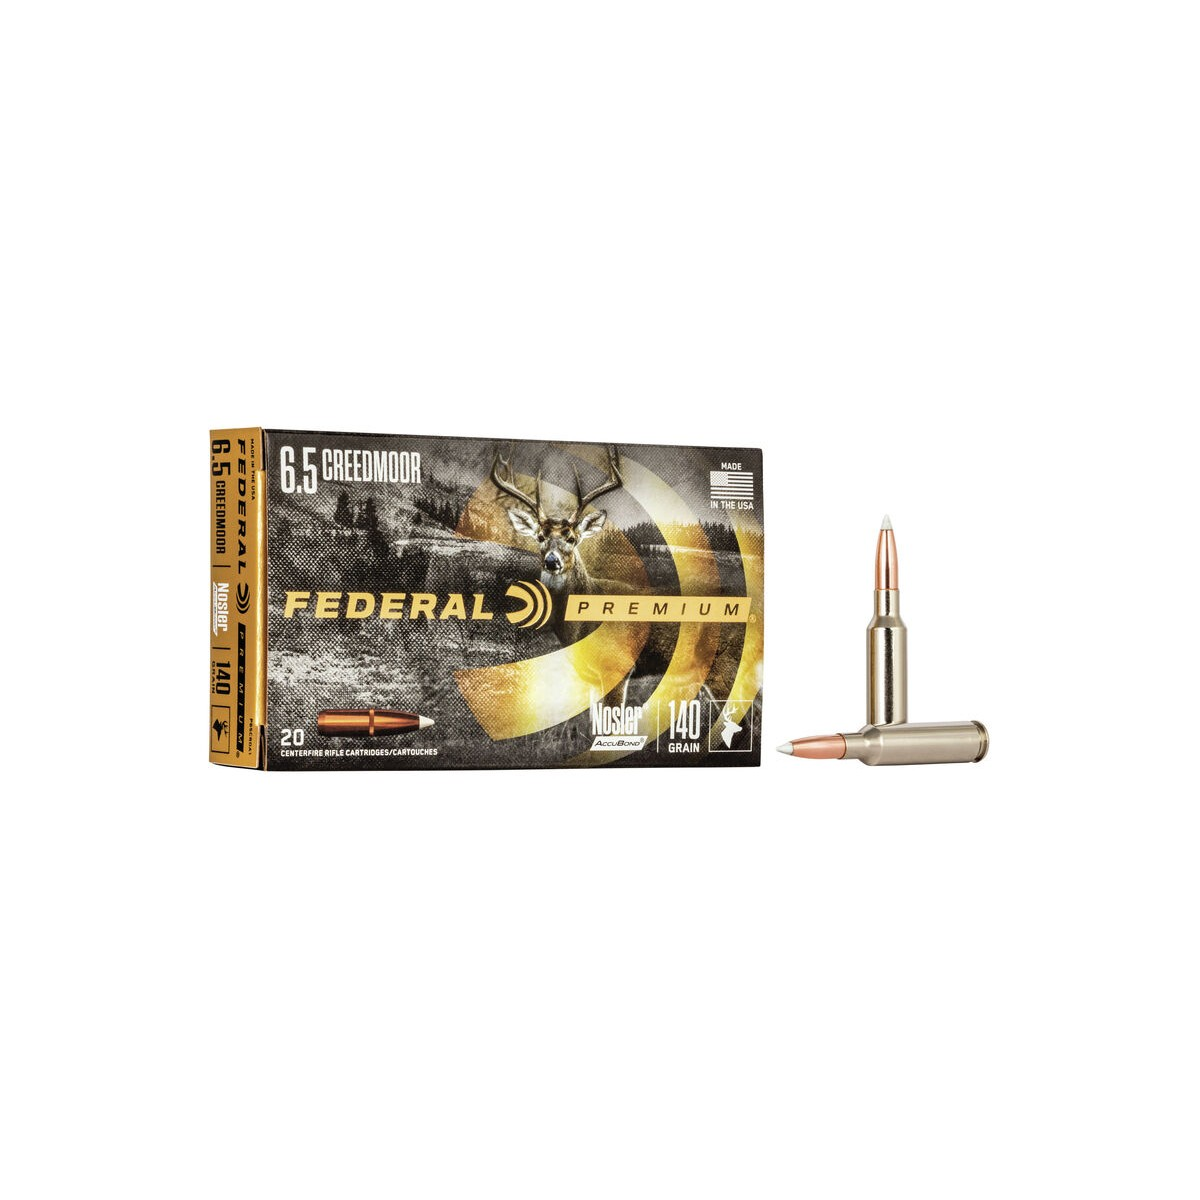 Federal Nosler Accu Bond 6,5 Creedmoor